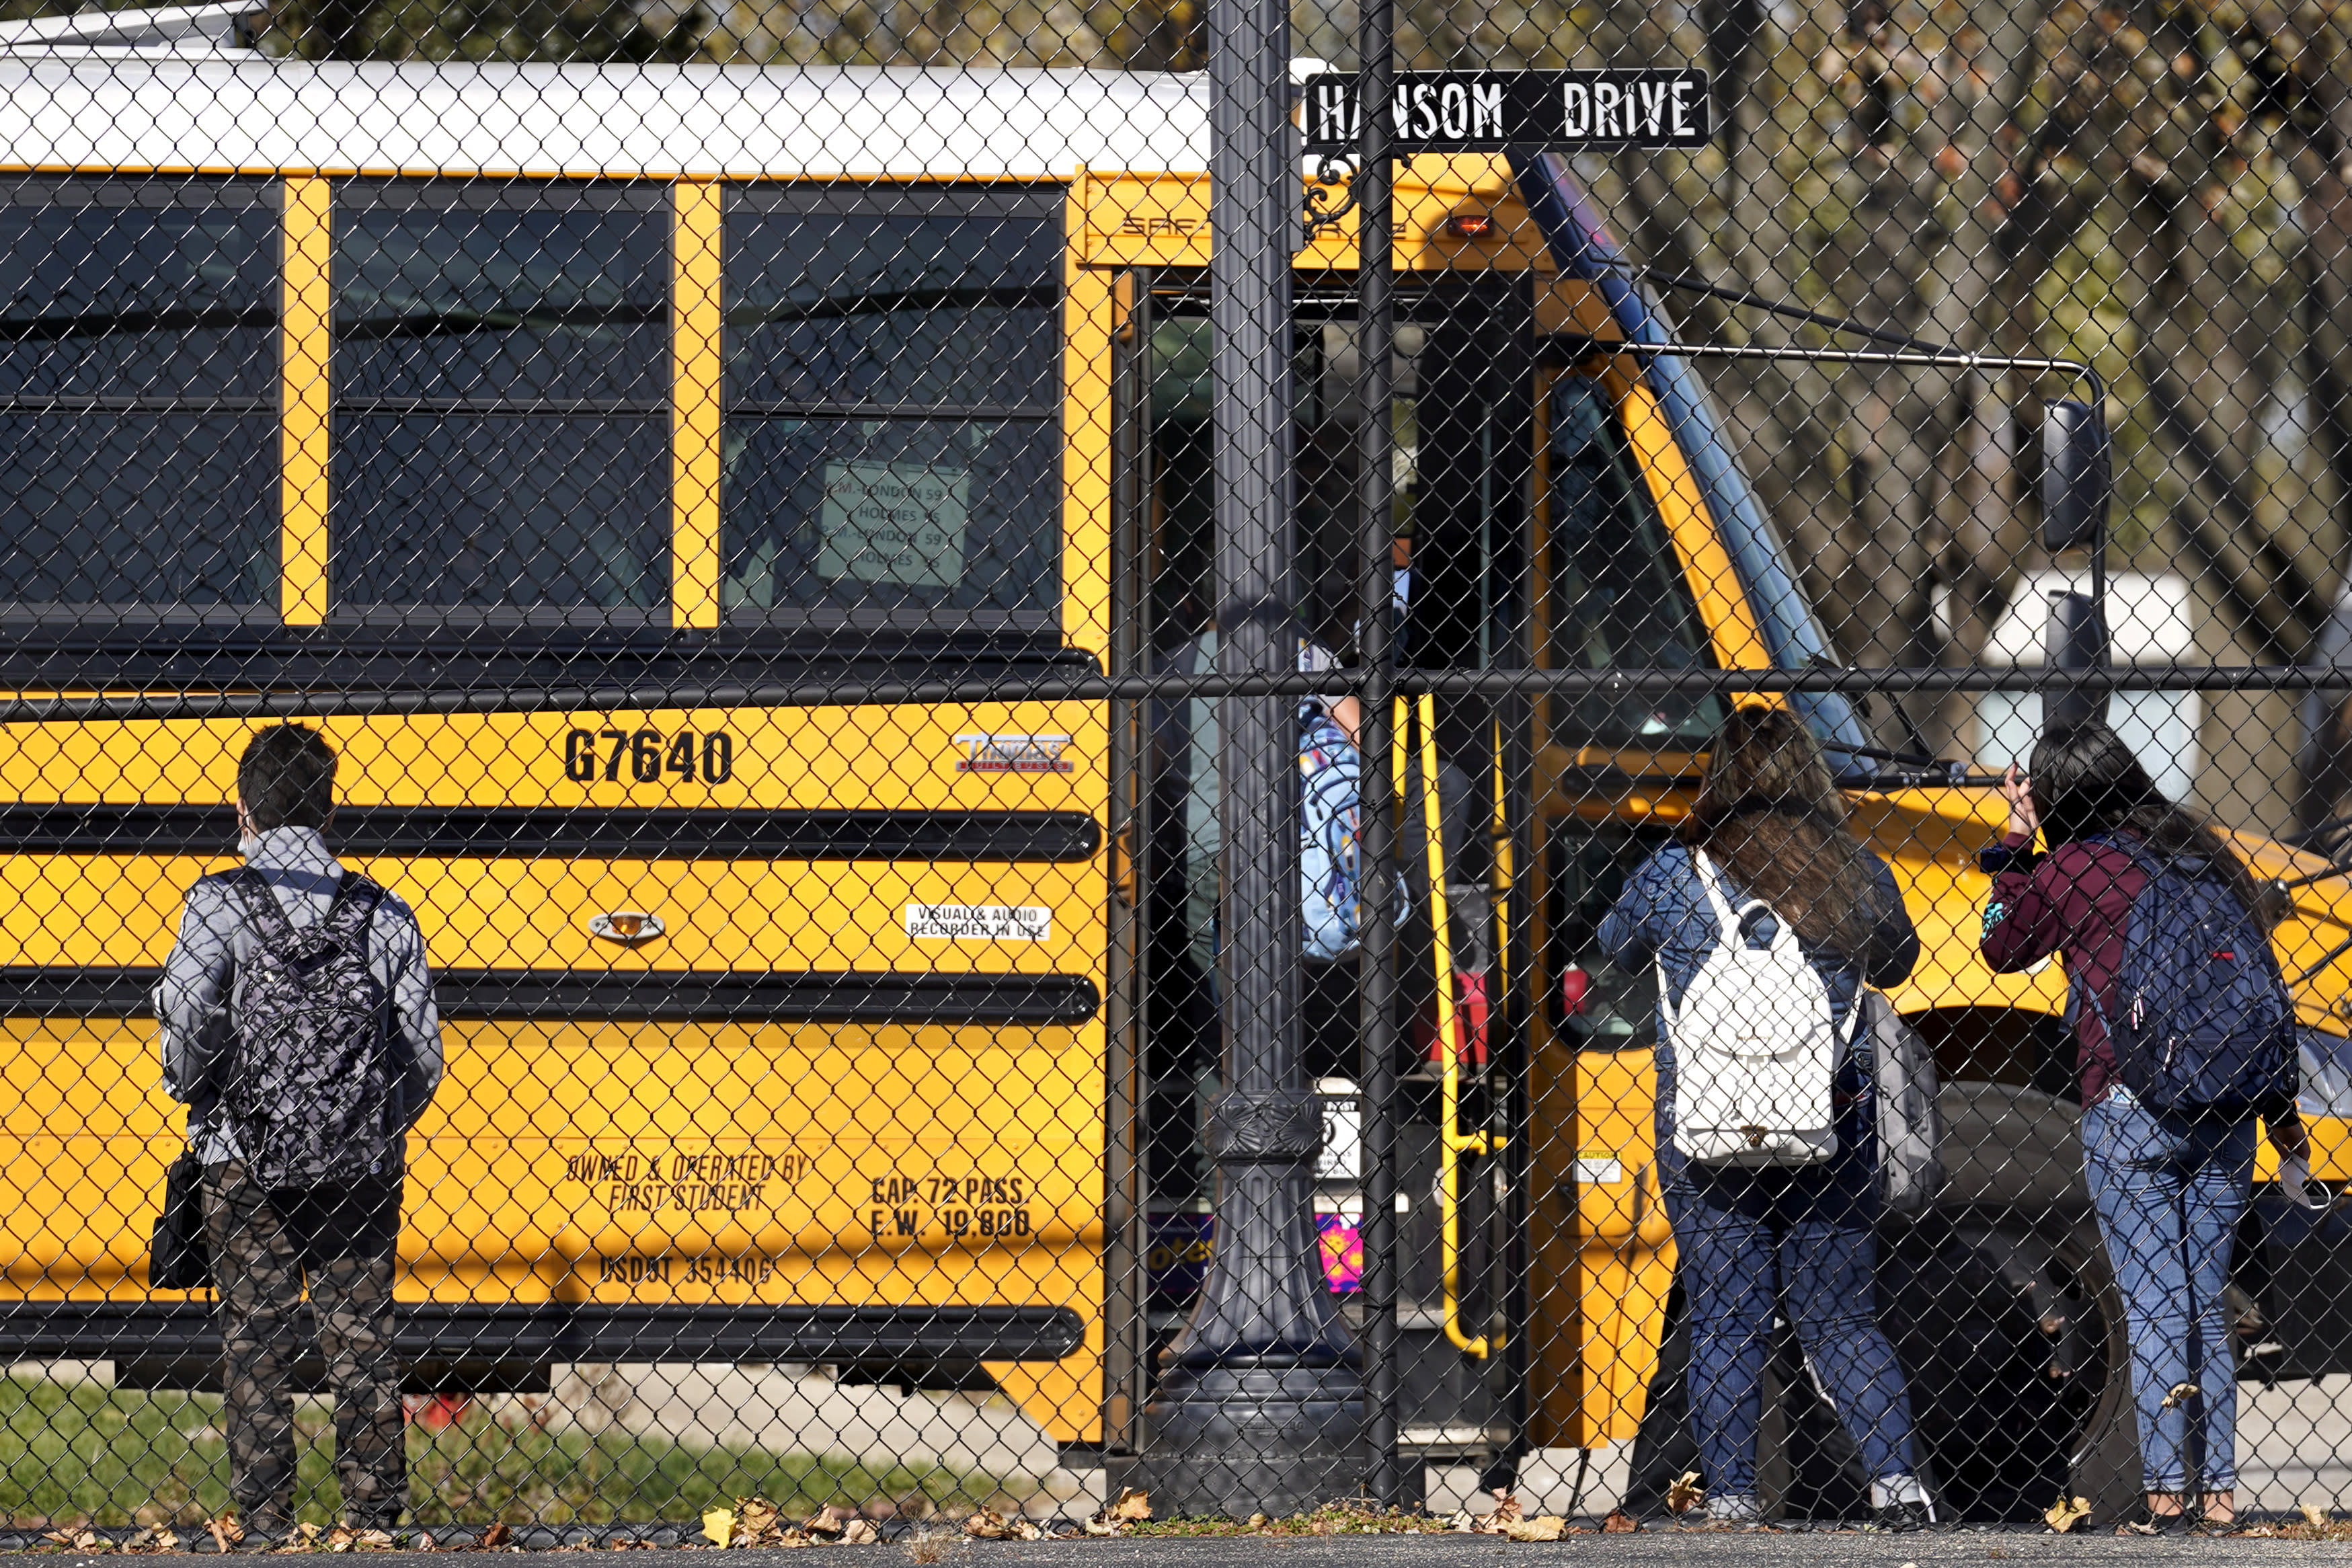 With COVID-19 surging, schools suspend in-person education